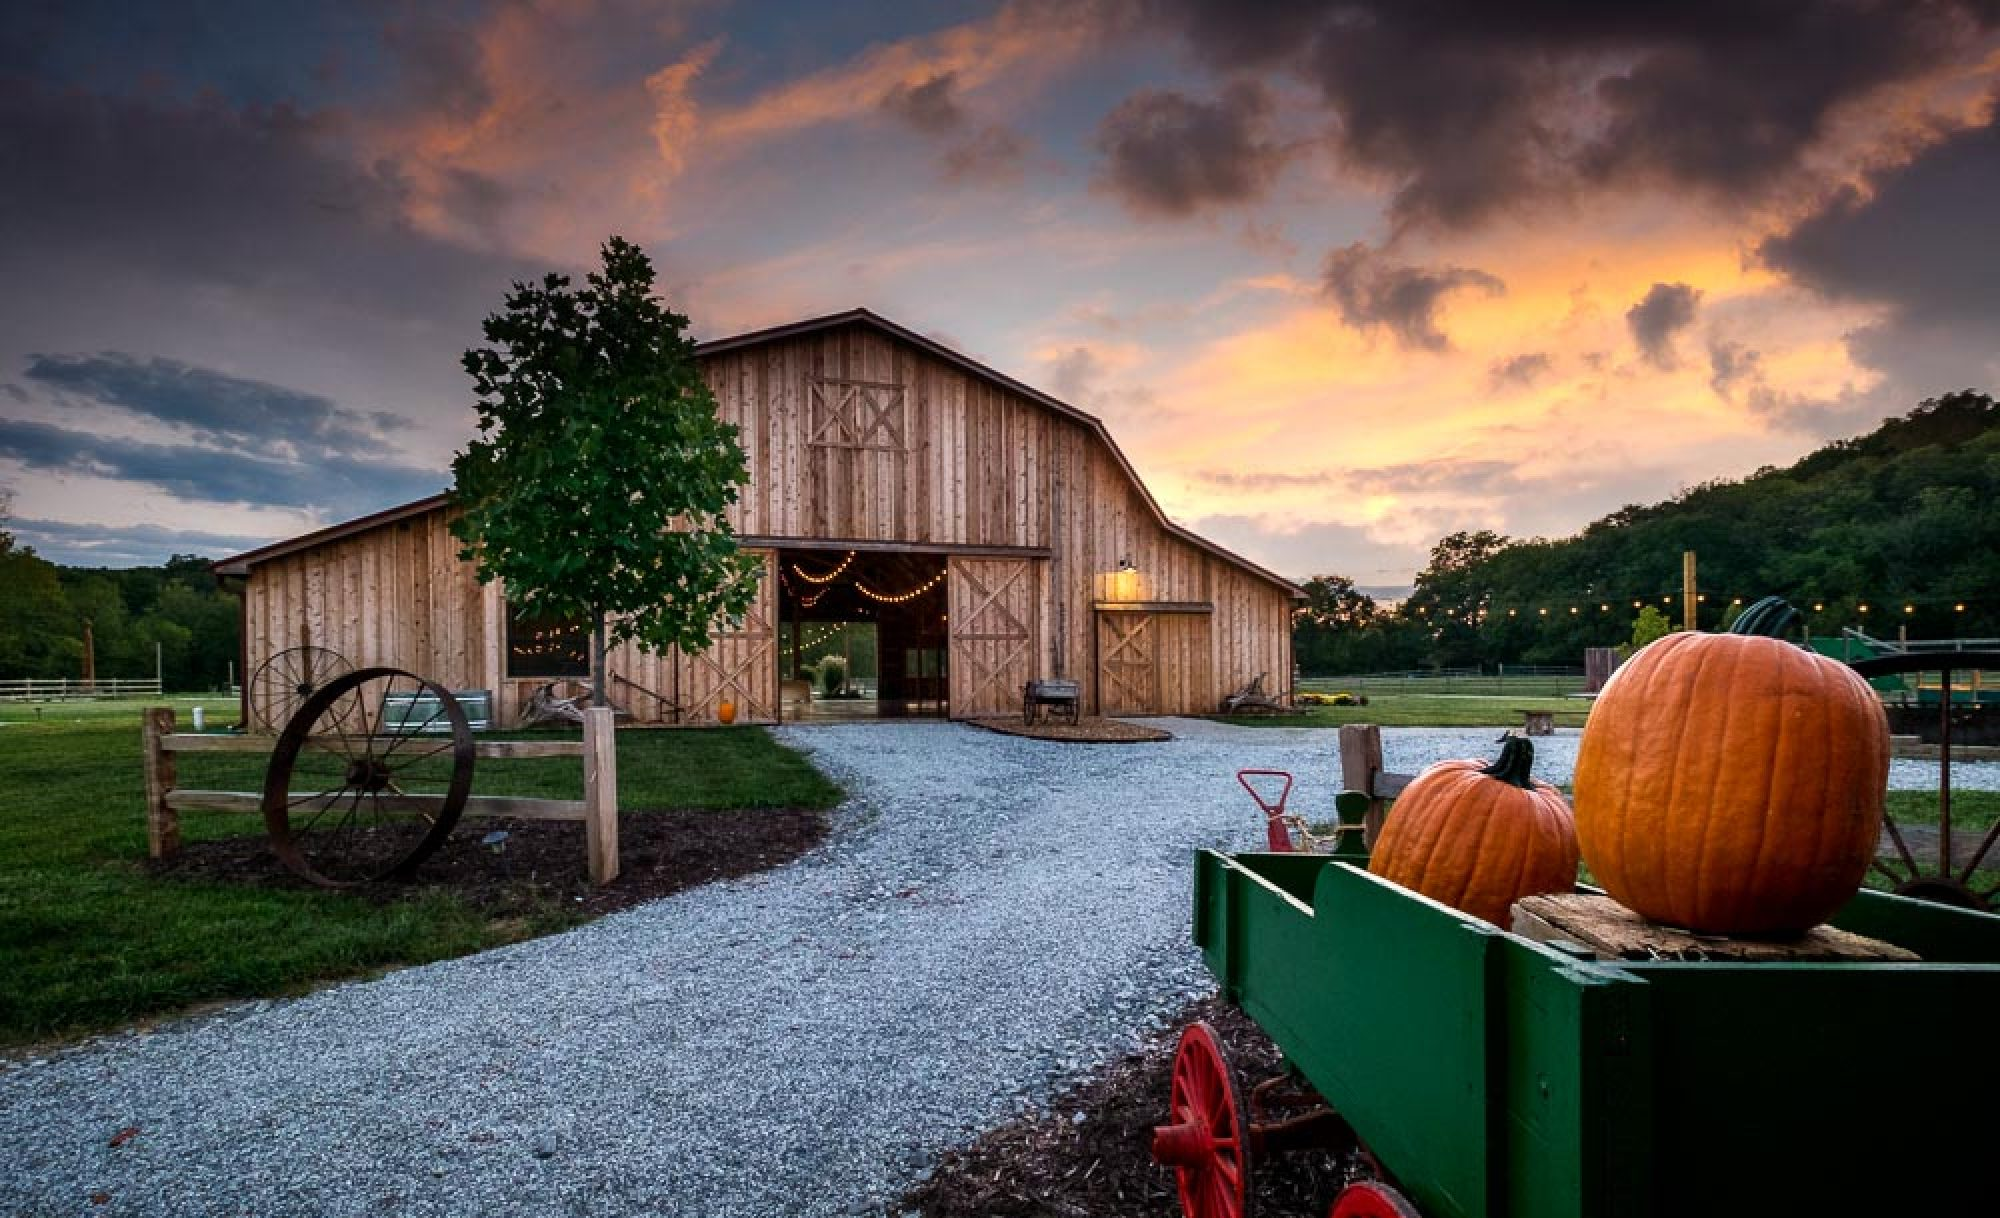 Valley Farms - No list would be complete without a farm venue, right? That's where Valley Farms takes the cake. Valley Farms in Foristell, MO (just outside of O'Fallon, MO), is a gorgeous place with ample space around several acres to explore. When you pull up to Valley Farms, you simply feel at home. When you walk in and see the functional rolling door walls and draped lighting, your jaw drops.